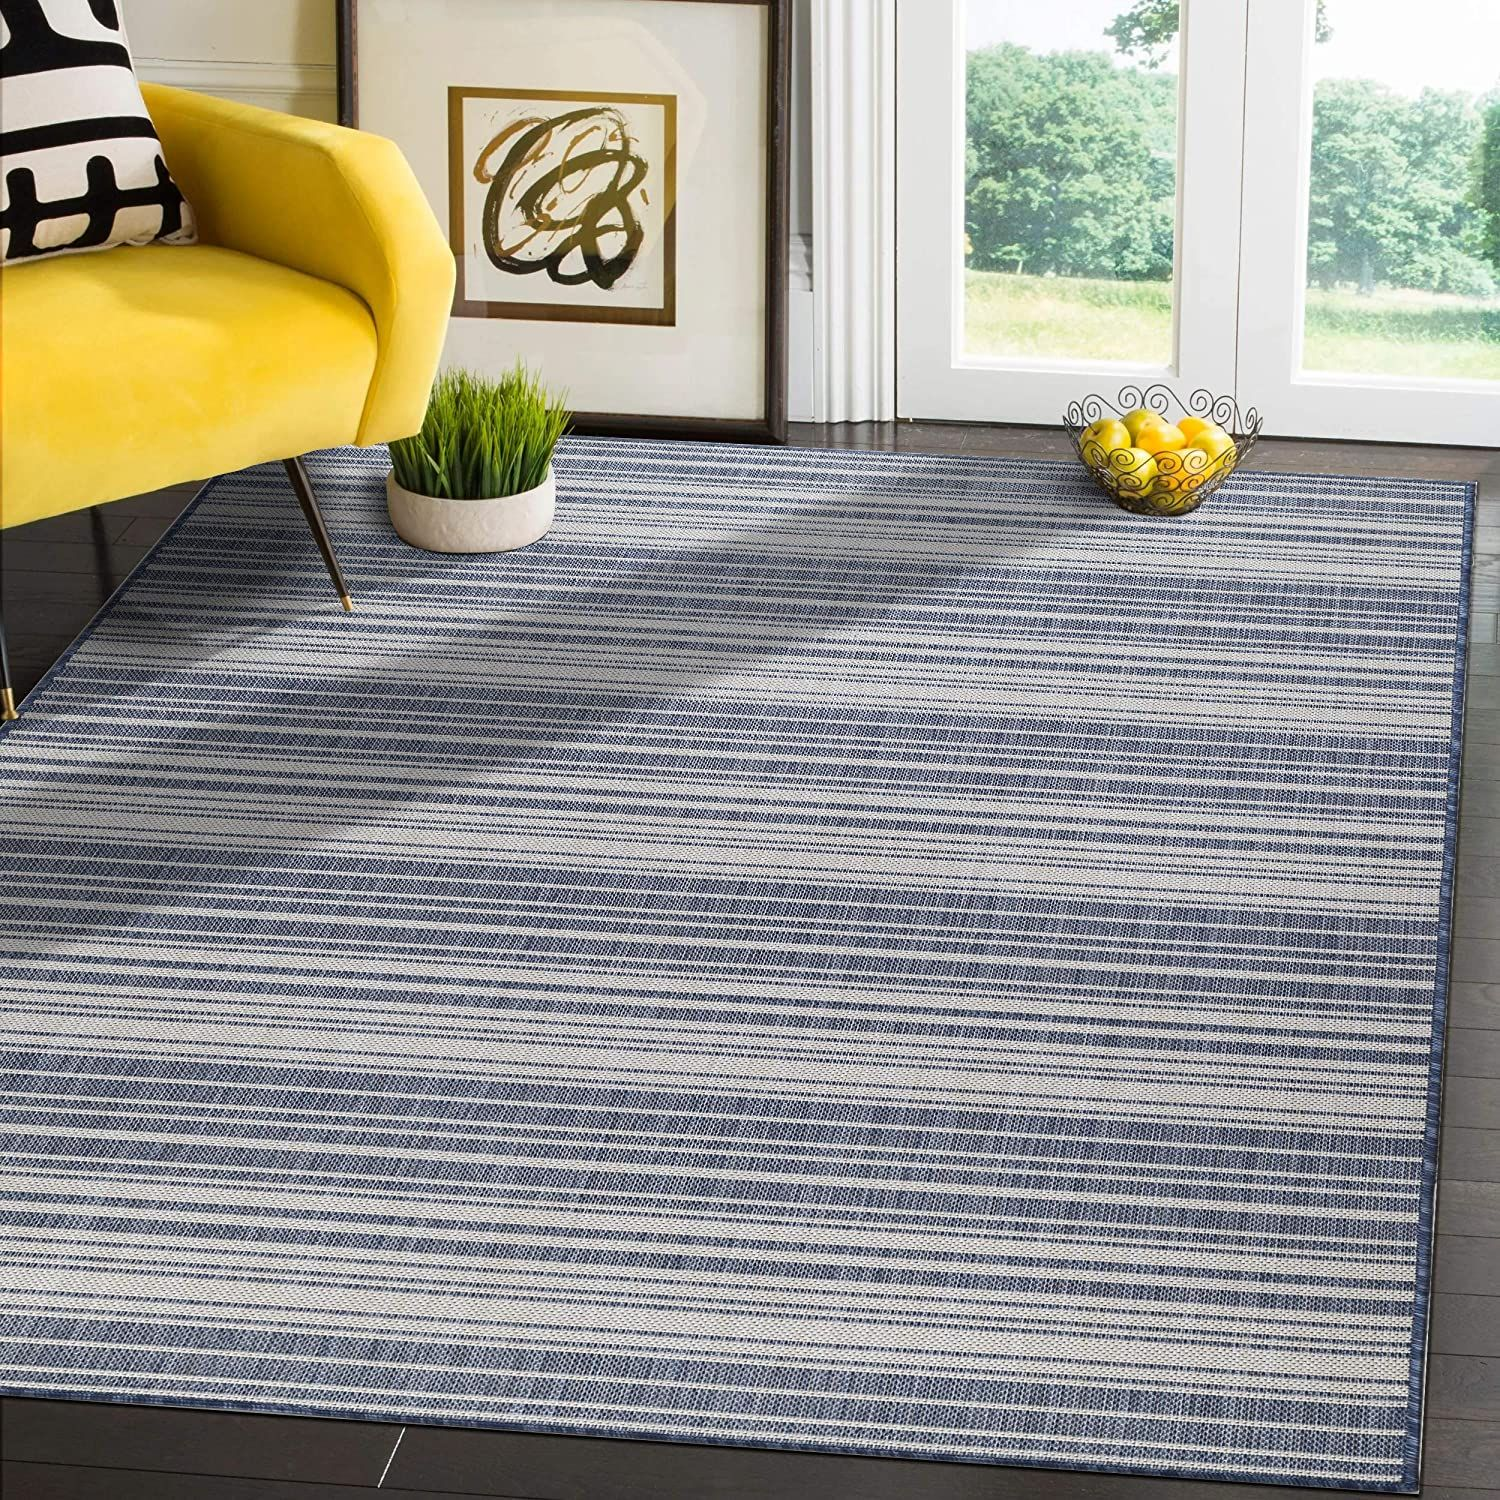 Modern Area Rugs for Indoor Outdoor Stripes   Blue / White   8x10 Gallery